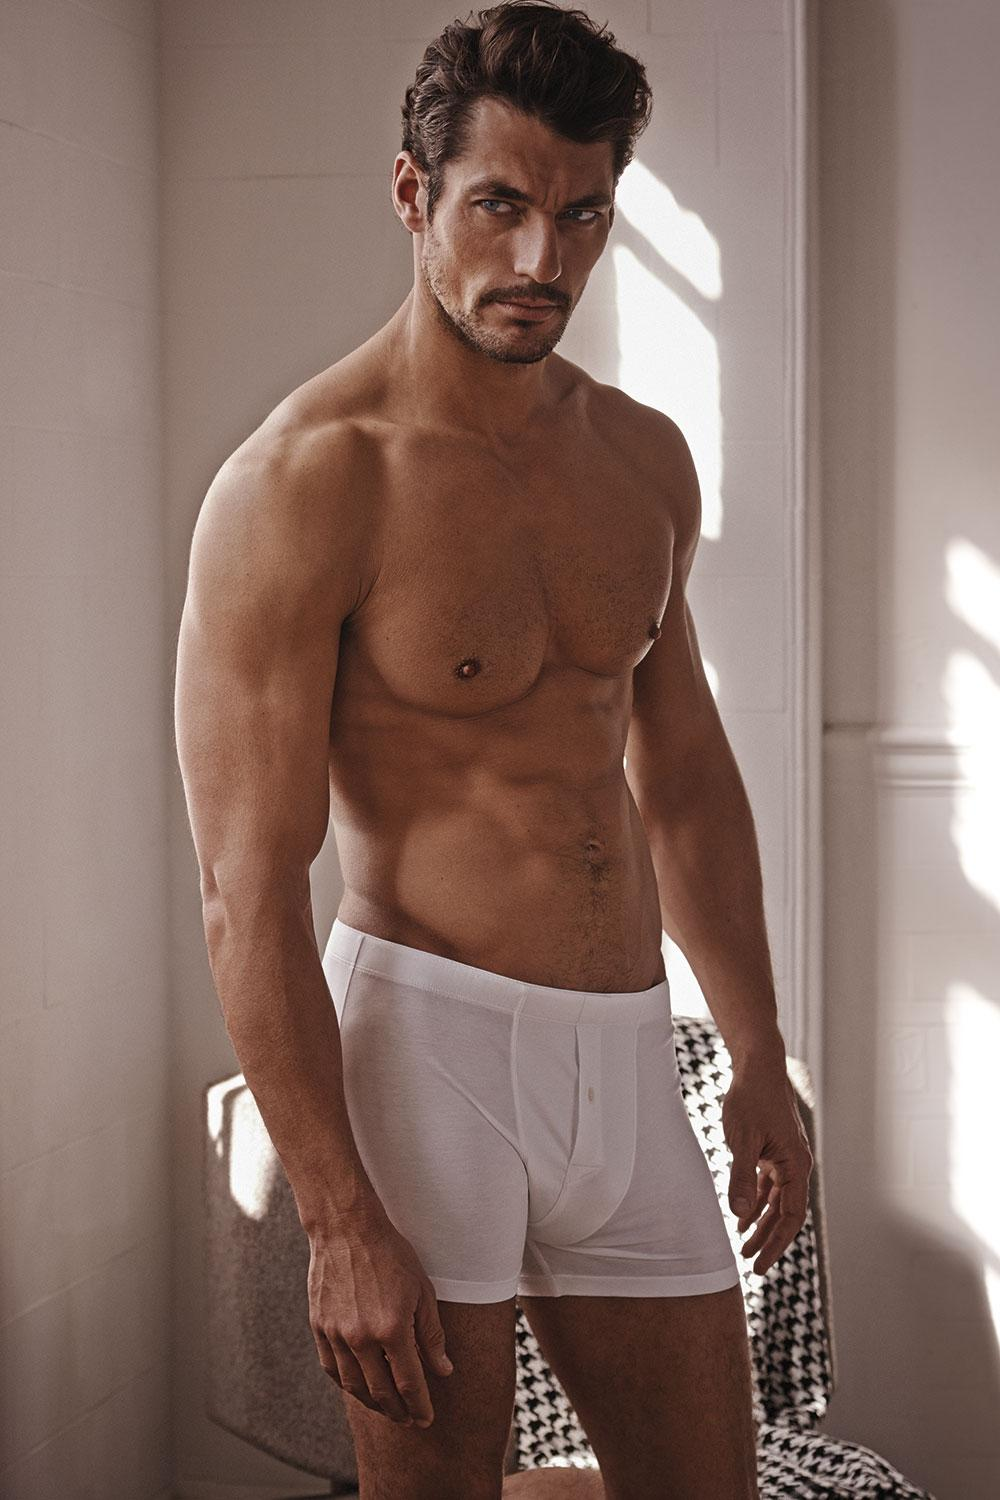 Have you seen @DGandyOfficial's steamy new ad for @marksandspencer yet? http://t.co/PFiZ1tNT8M http://t.co/4ngSM1ra3W